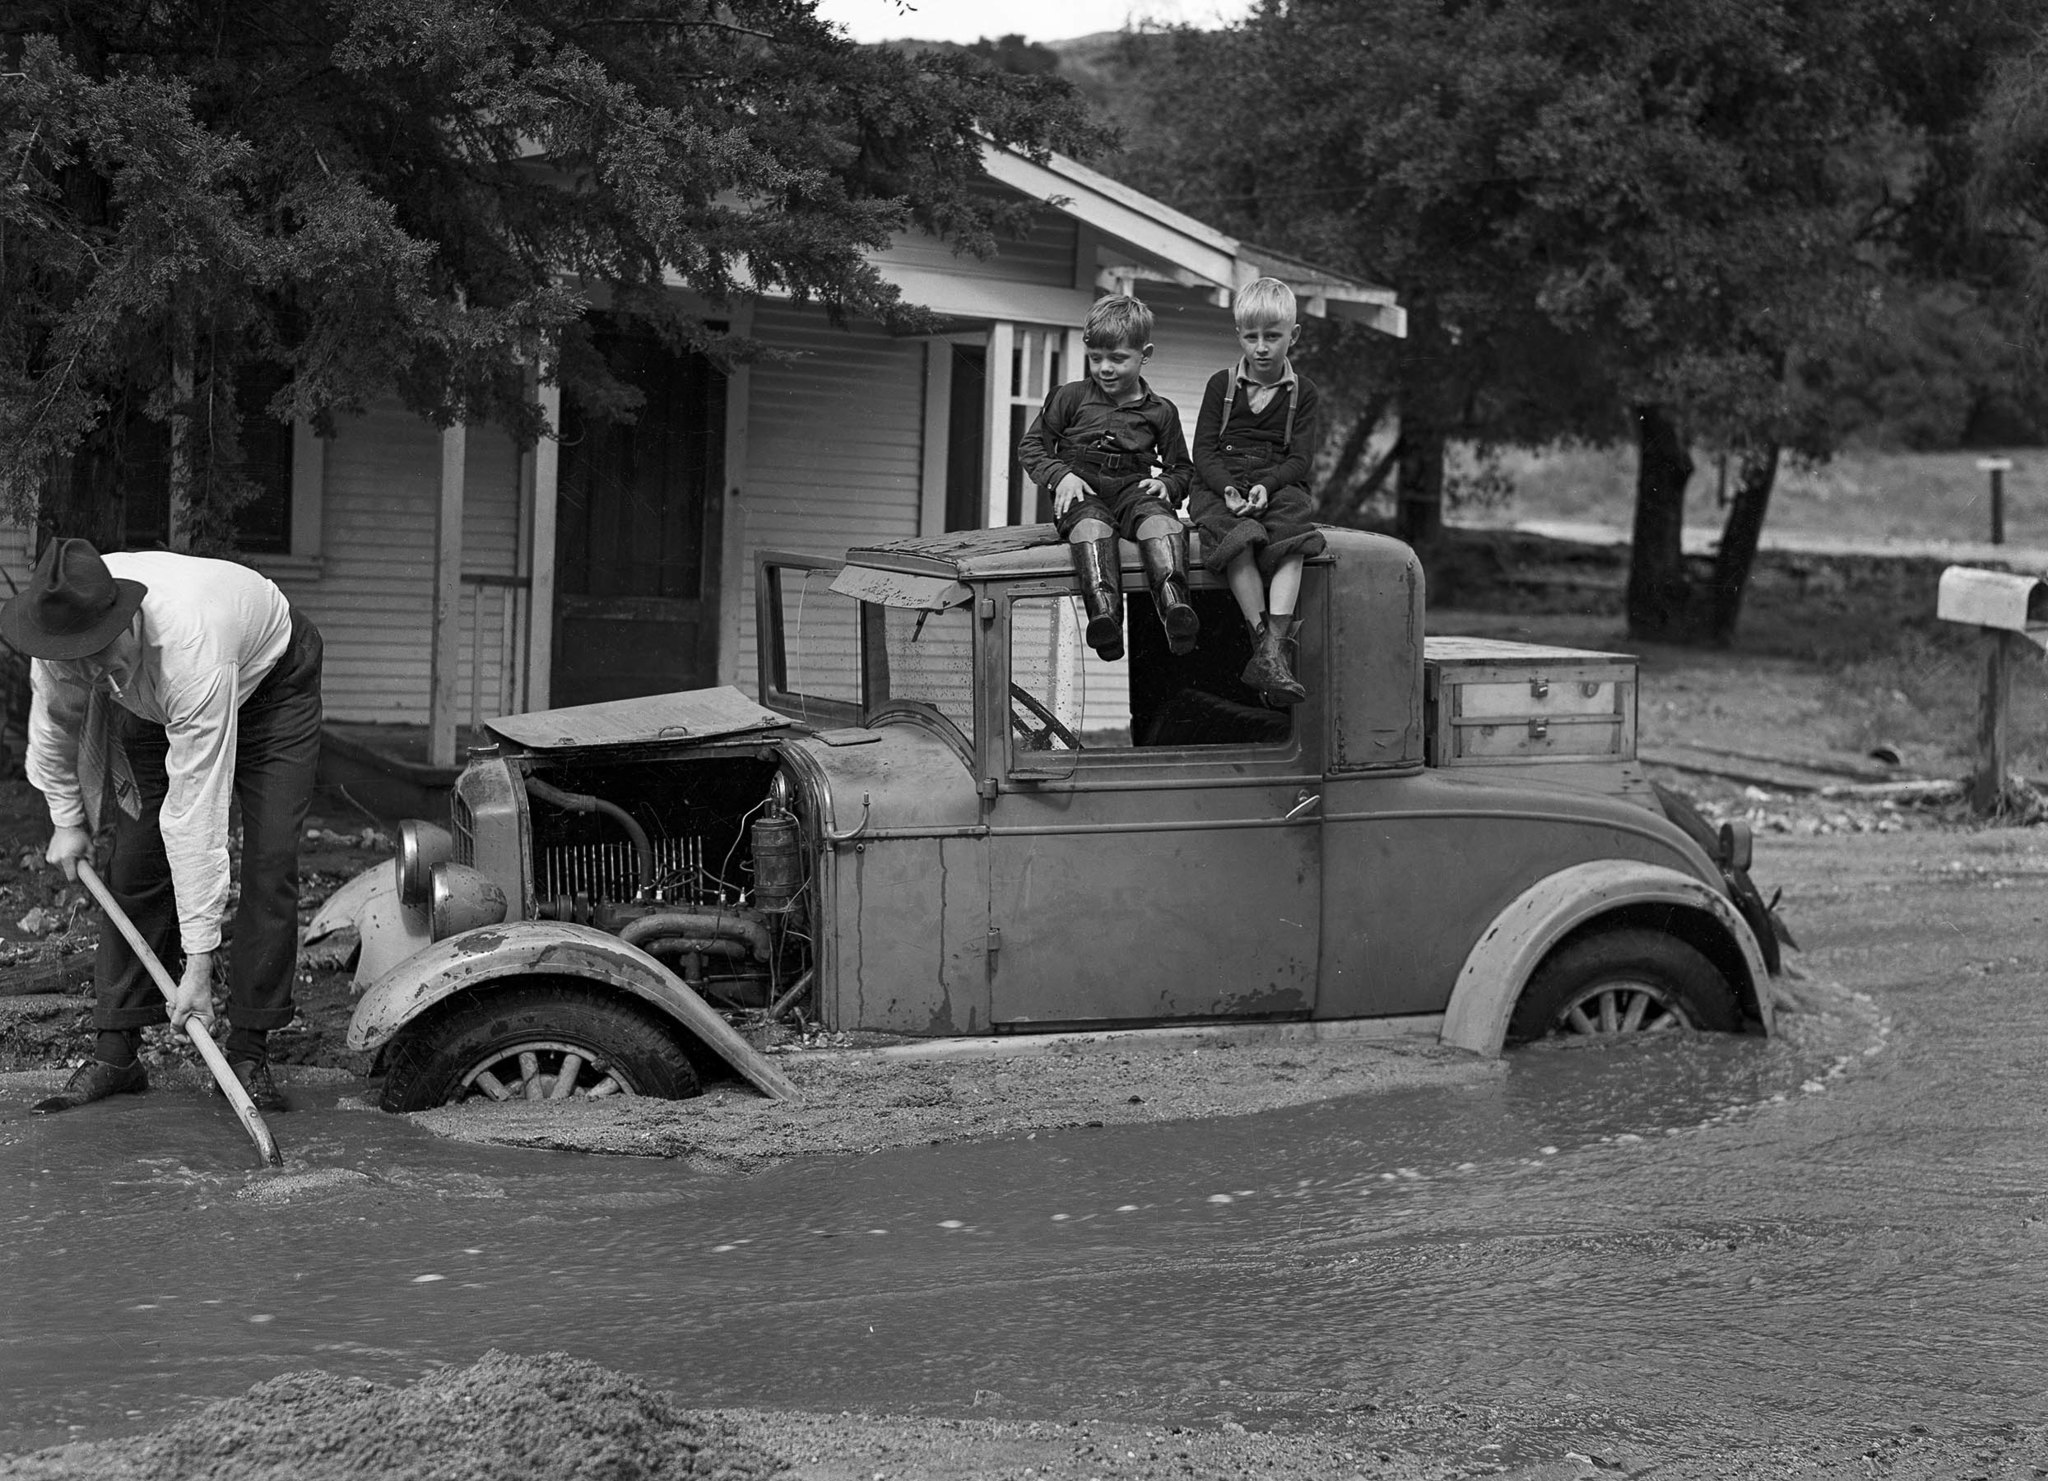 March 3, 1938: William L. Griffin starts to dig out the family car in 1700 block of Fernlane Street